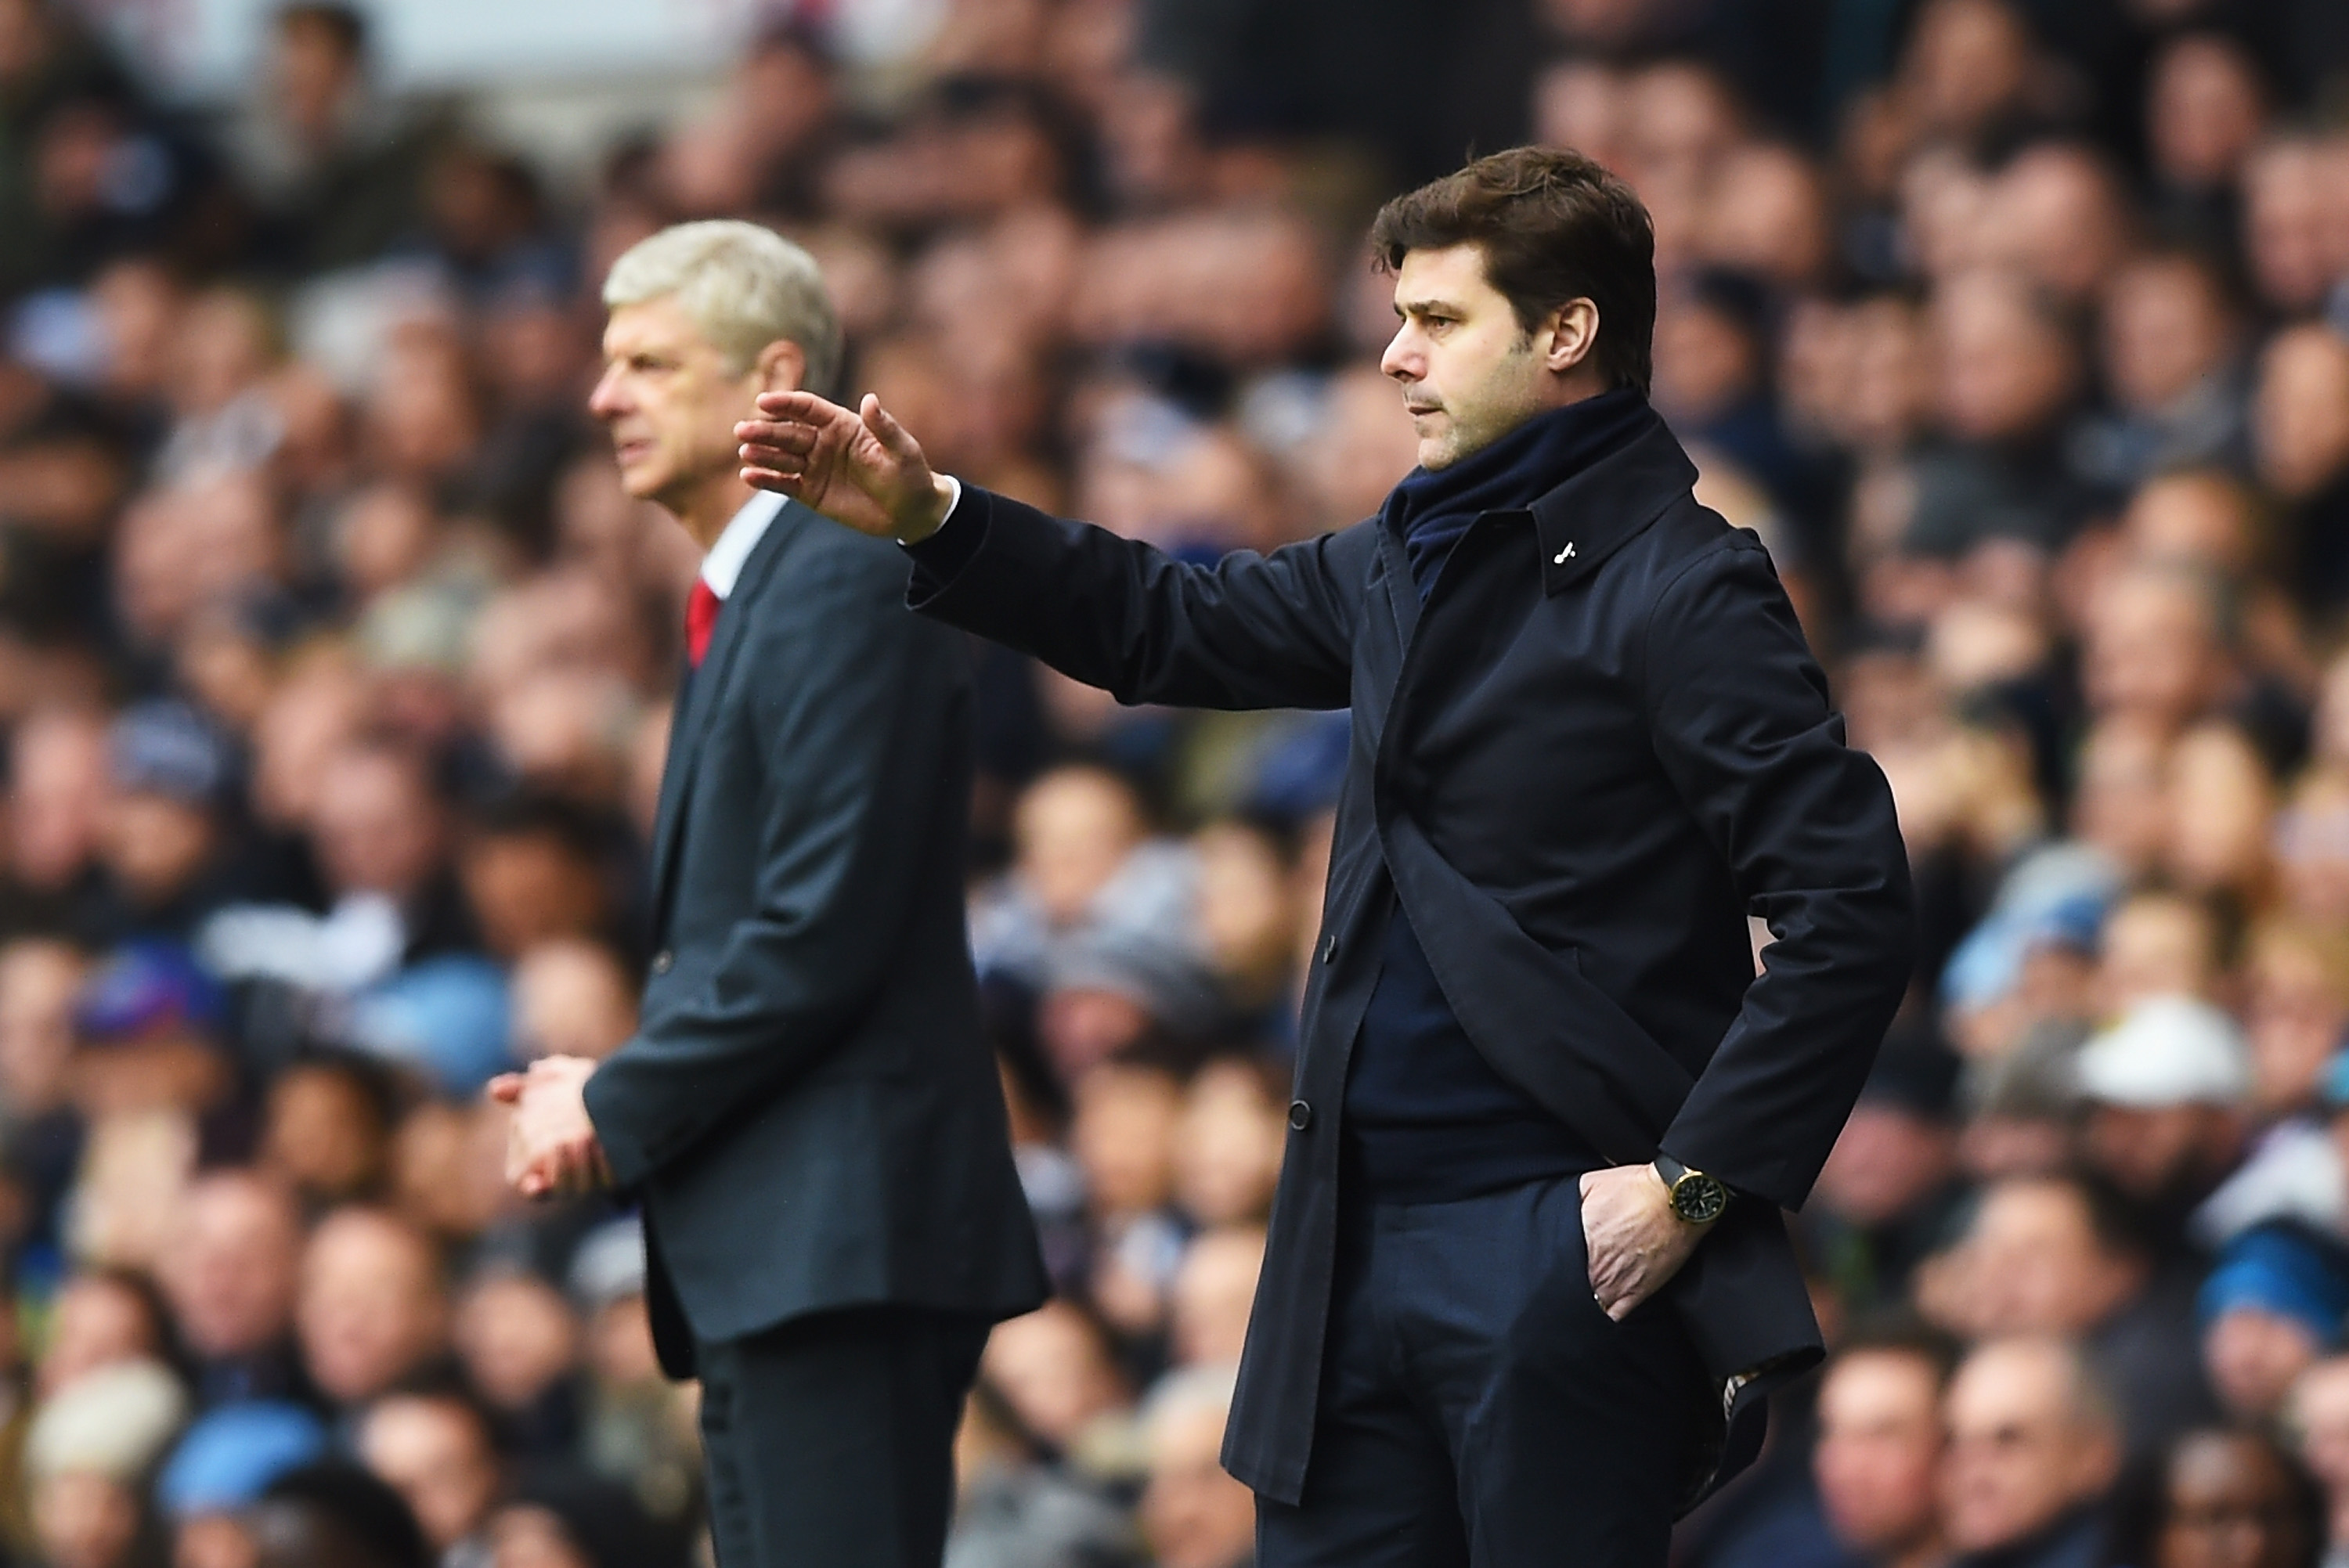 Tottenham need to finish above Arsenal, says former Spurs star Jermaine Jenas